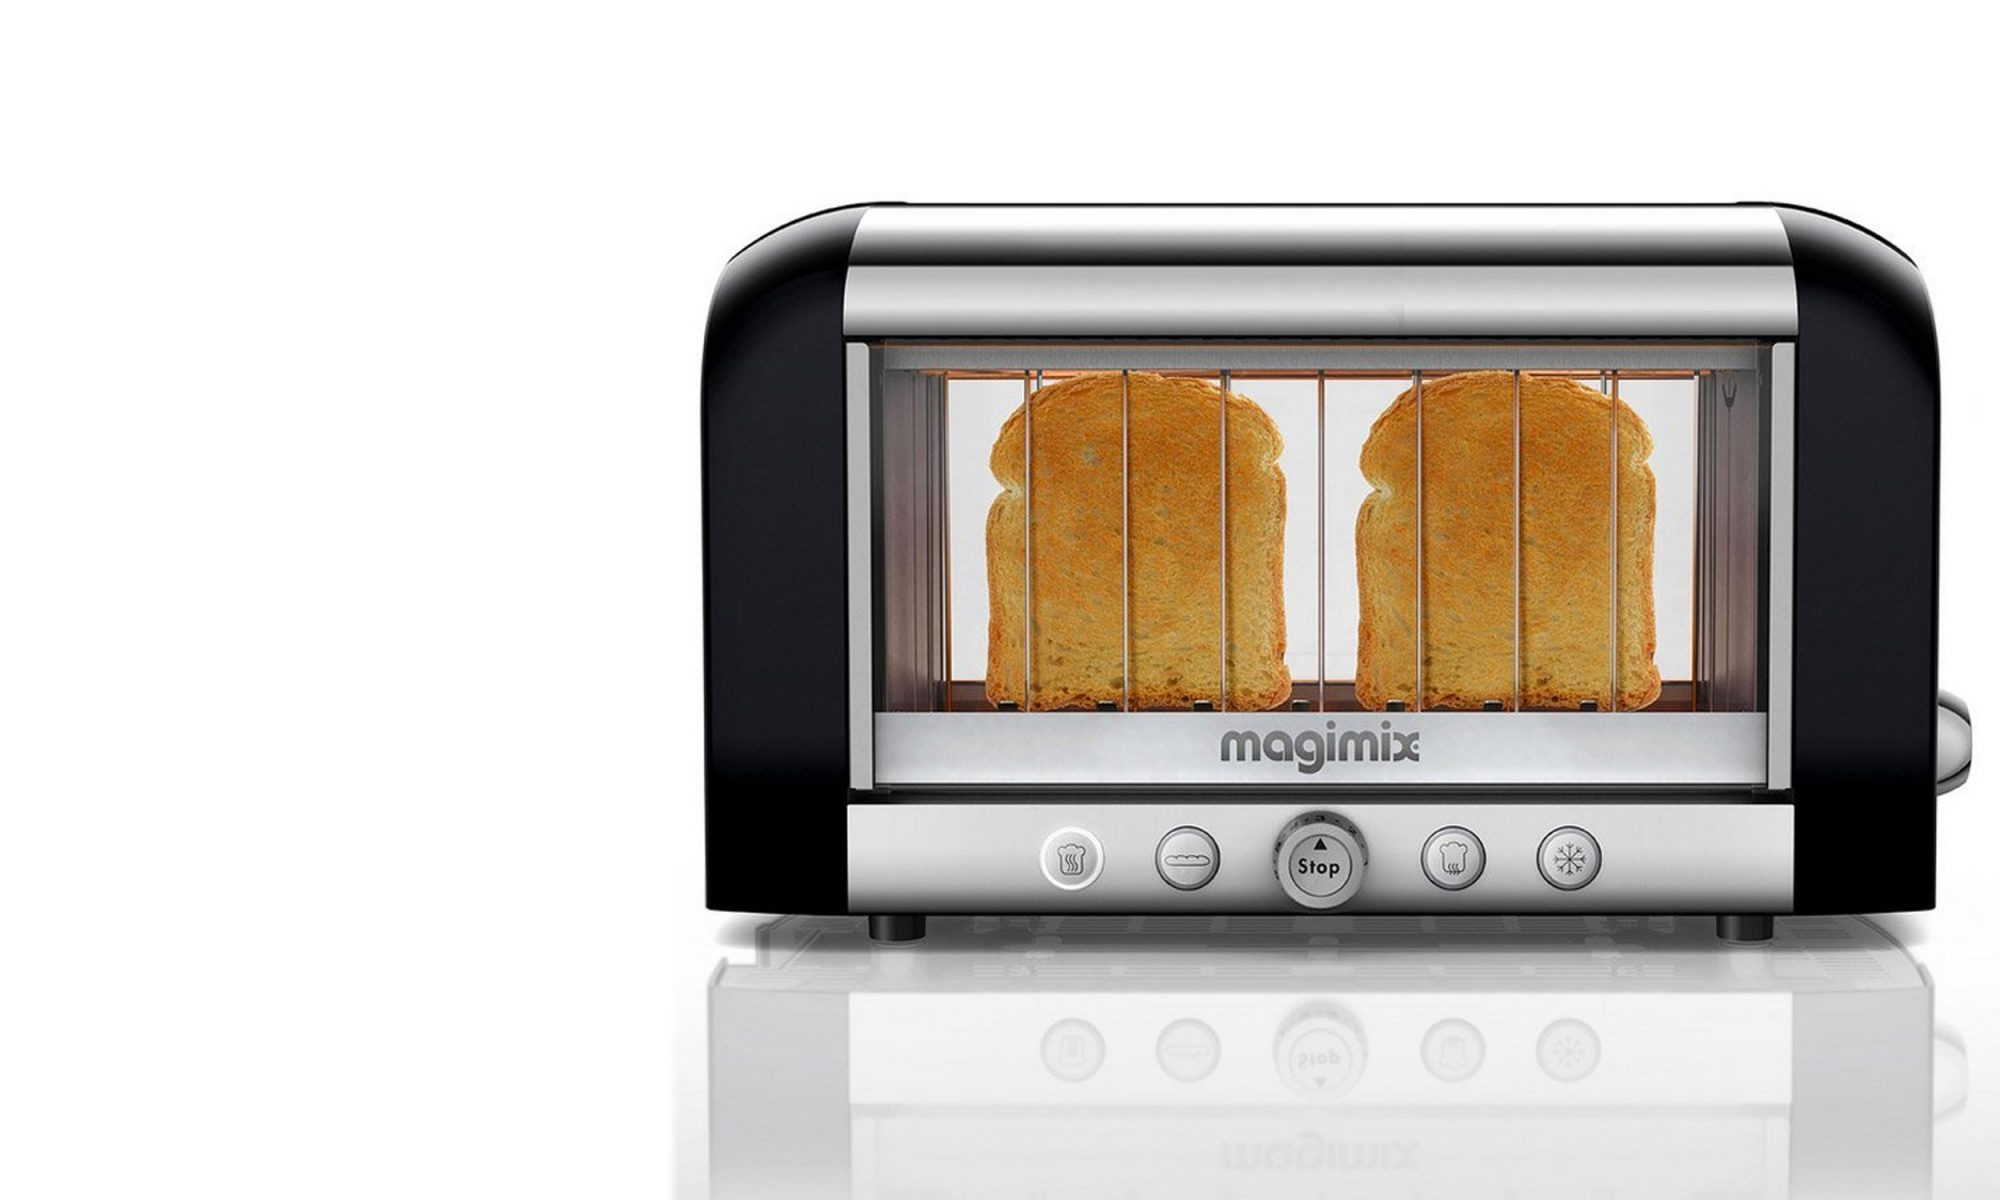 EC: This Glass Toaster Lets You Make Perfect Toast Every Time